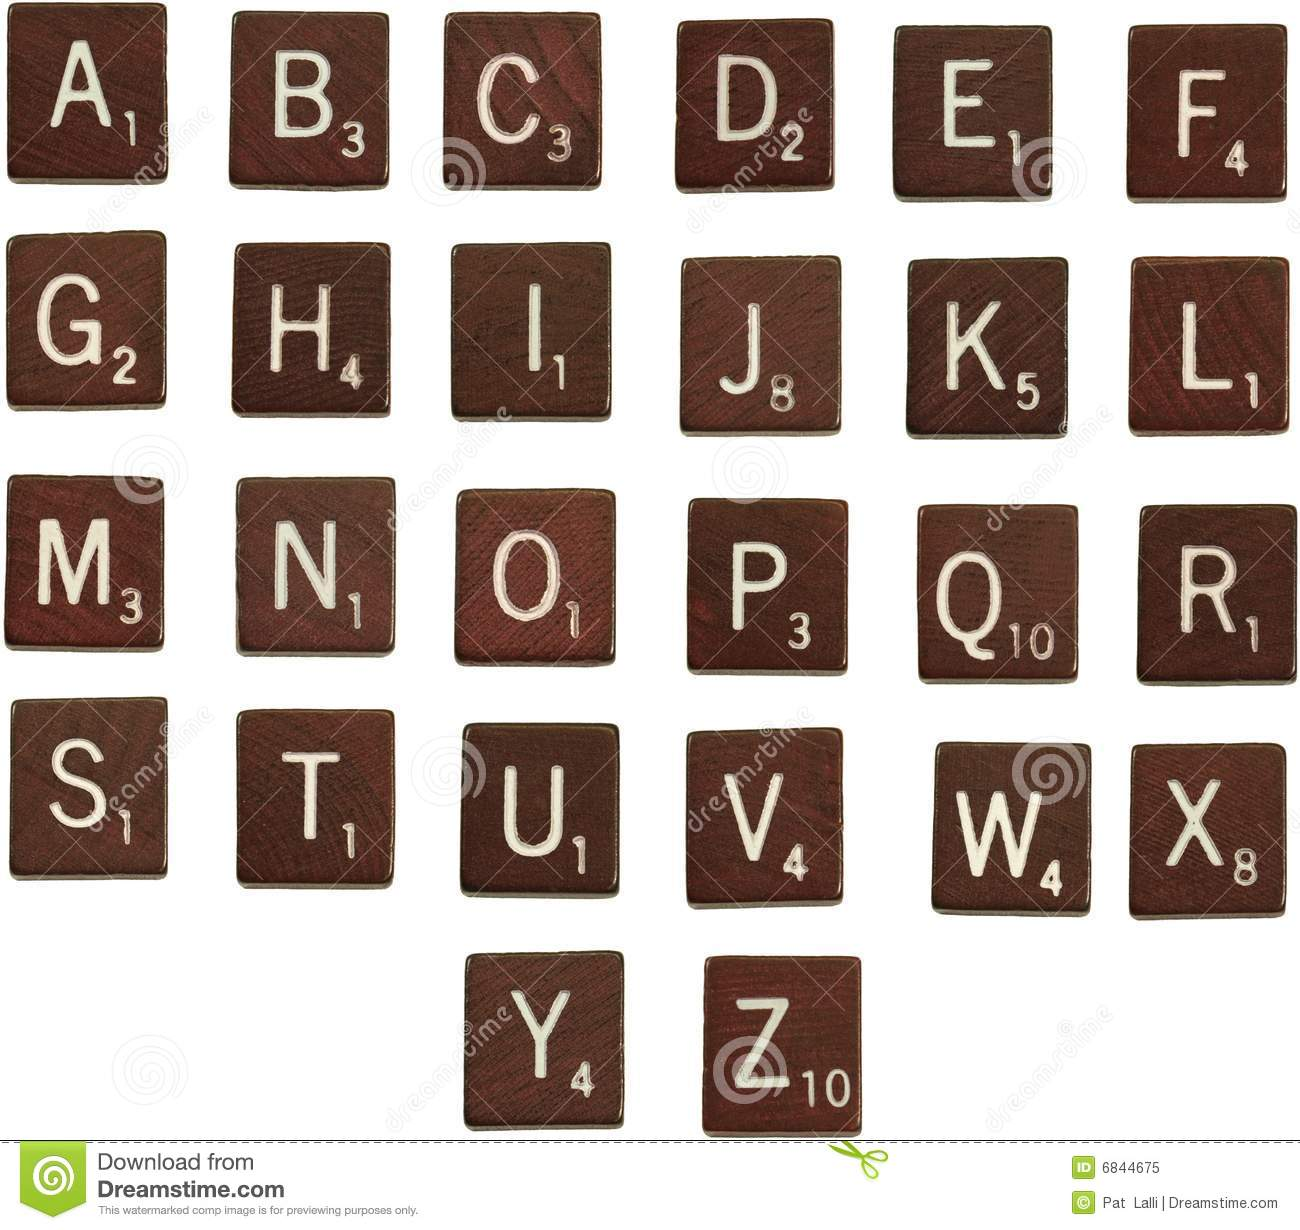 scrabble bezeichnet alphabet mit buchstaben lizenzfreies stockfoto bild 6844675. Black Bedroom Furniture Sets. Home Design Ideas